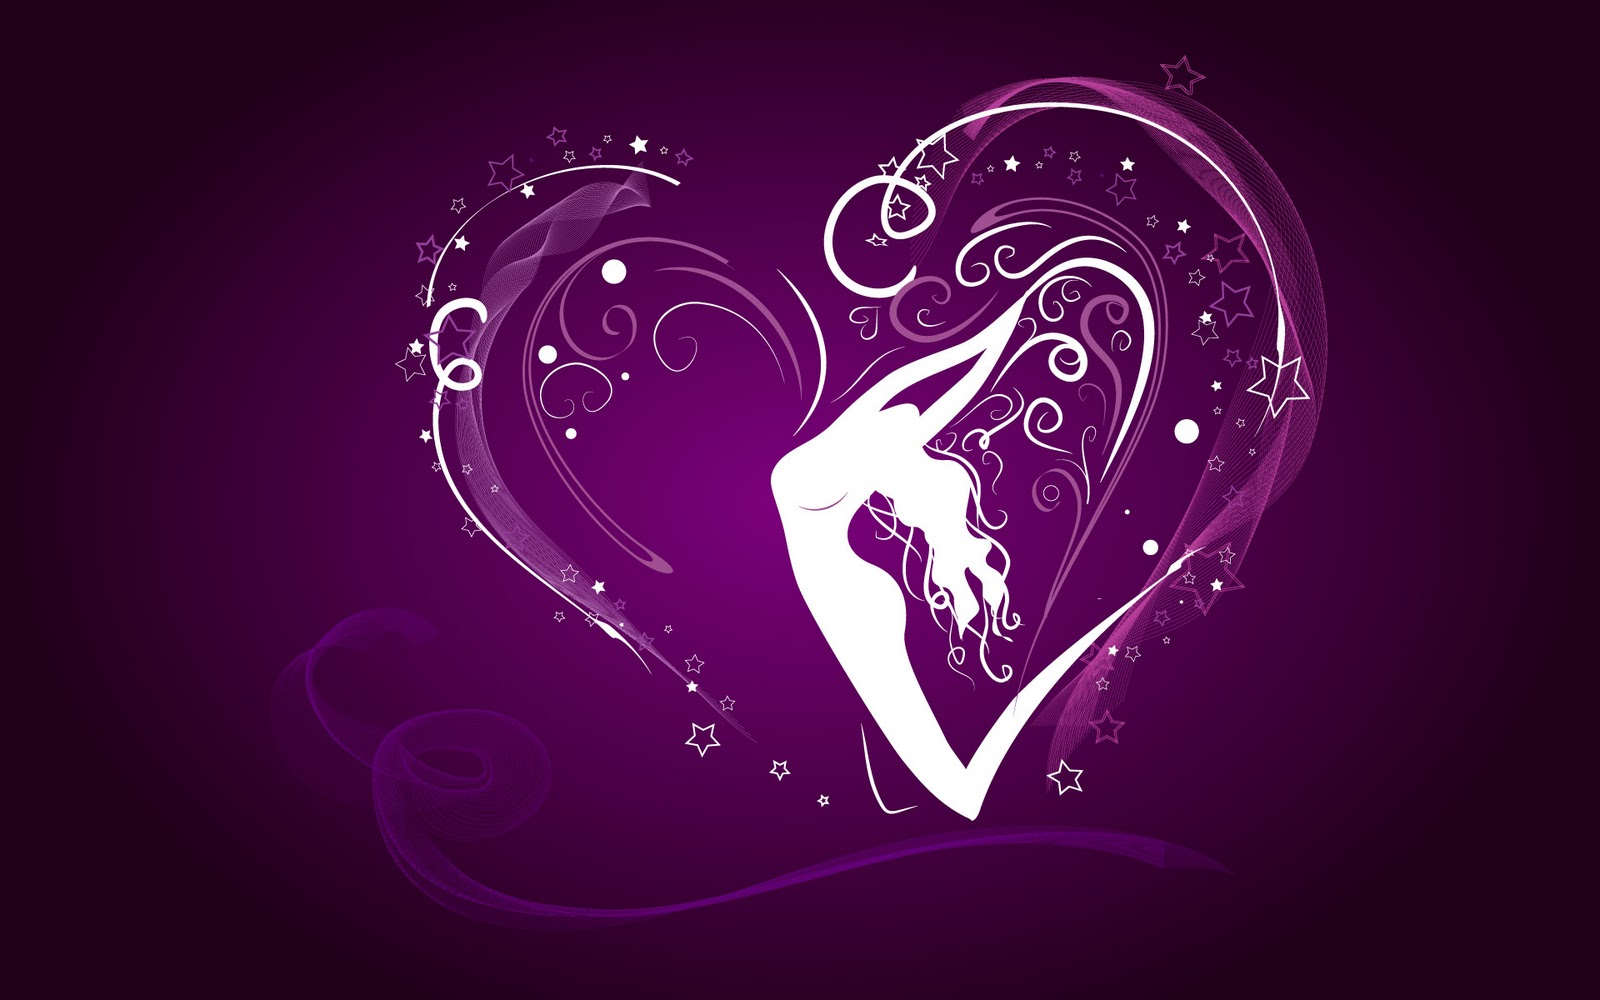 Purple Love Wallpaper: Valentine Day Gift,images,pictures,photo,wallpaper